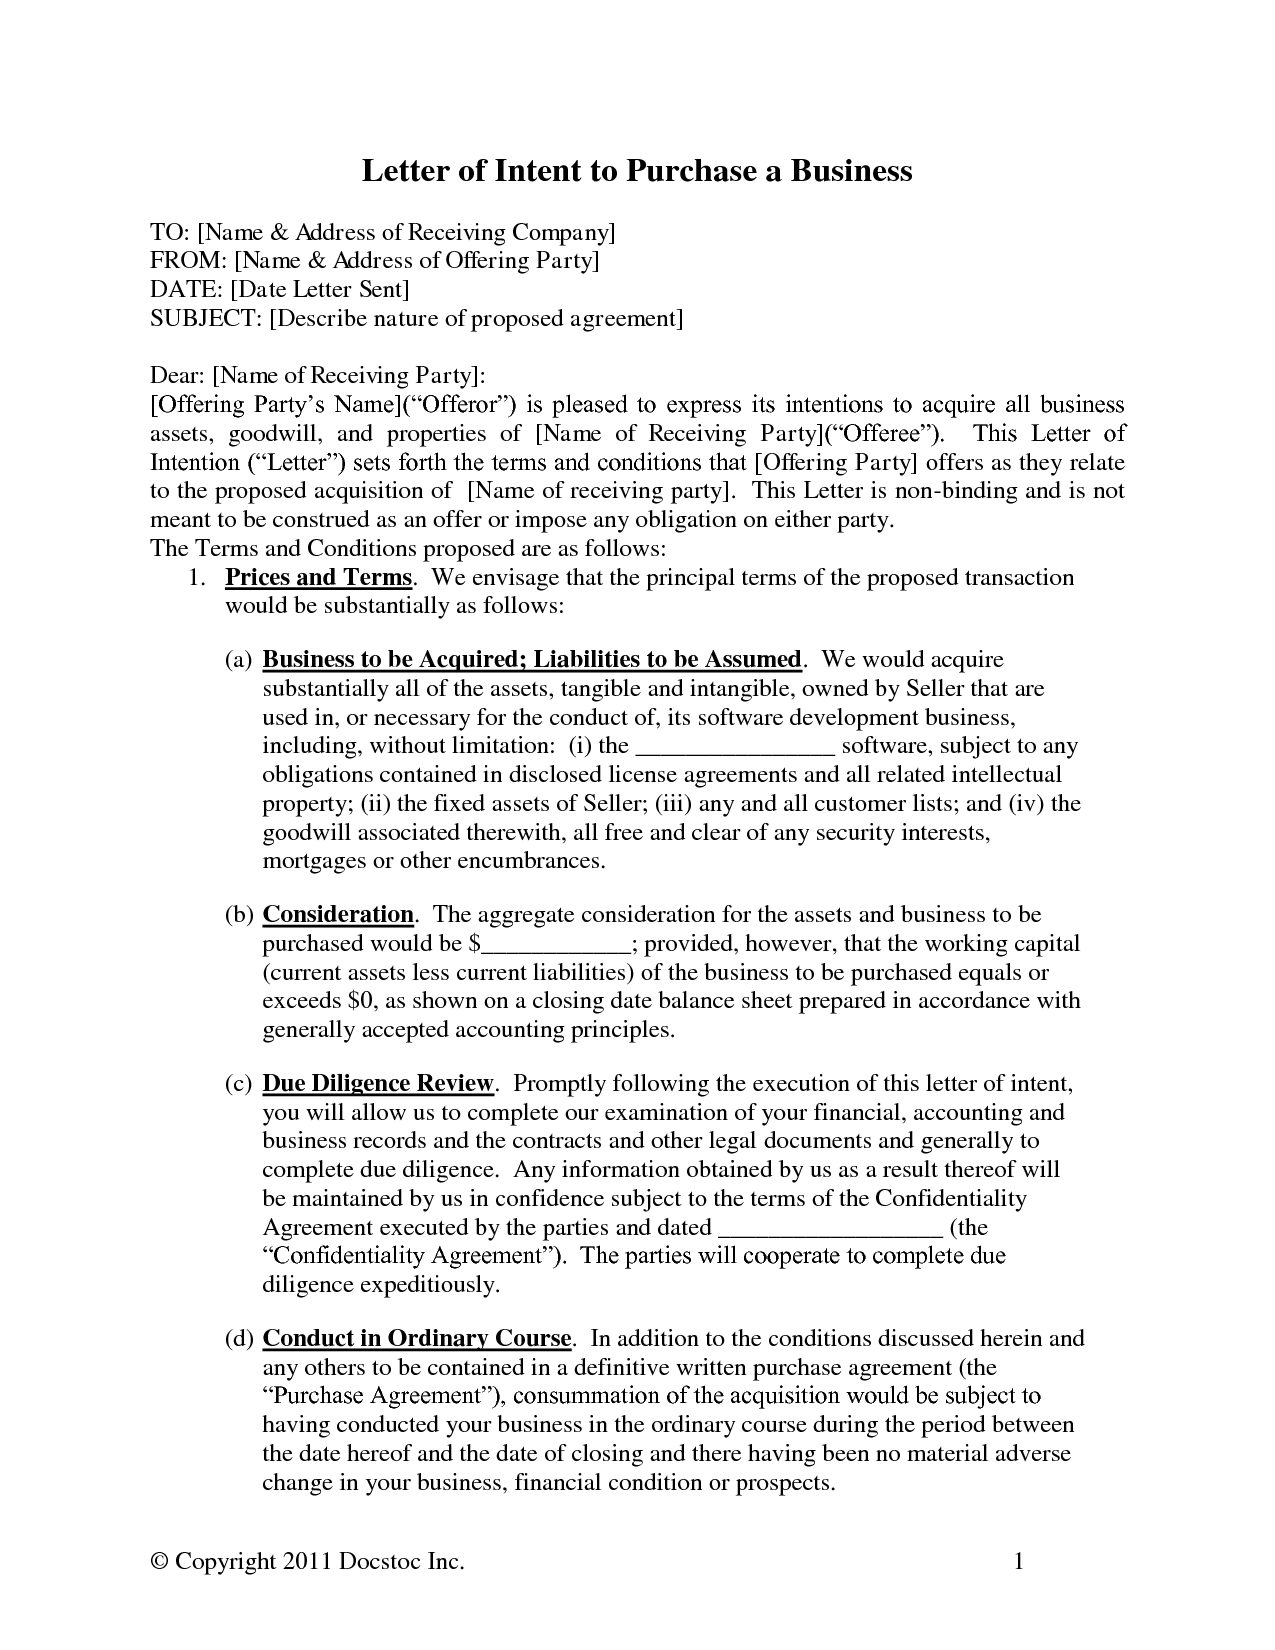 Letter Of Intent For Business Purchase Sample Template  Letter Of Intent To Purchase Business Template